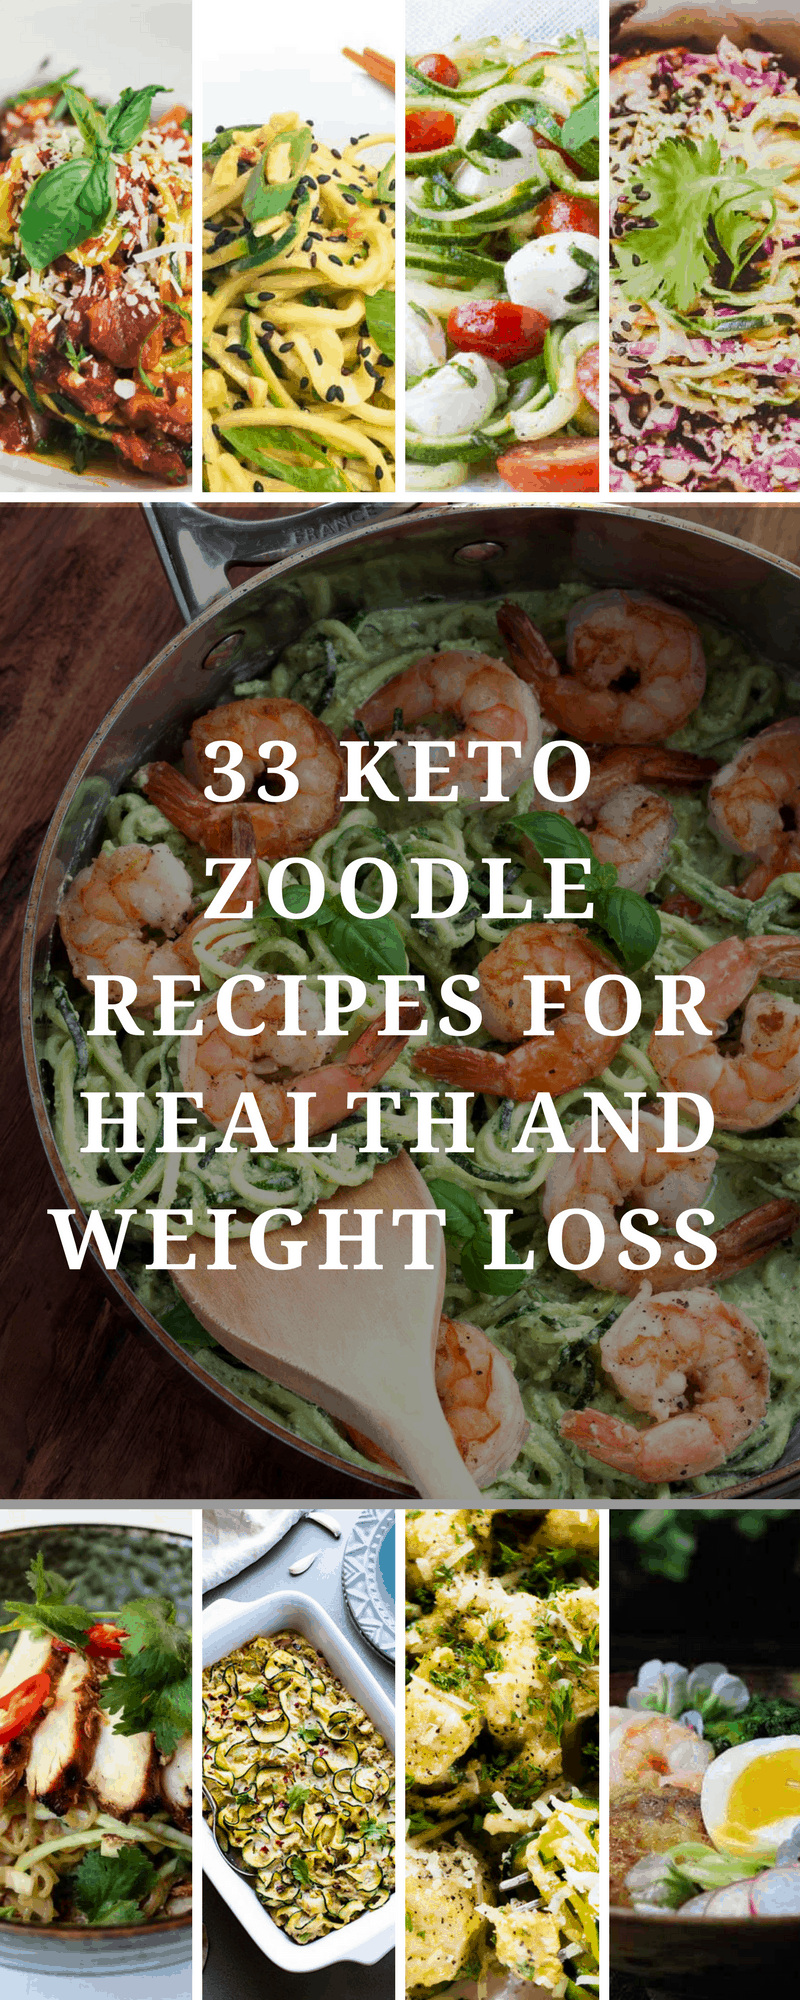 Keto Zoodle Recipes